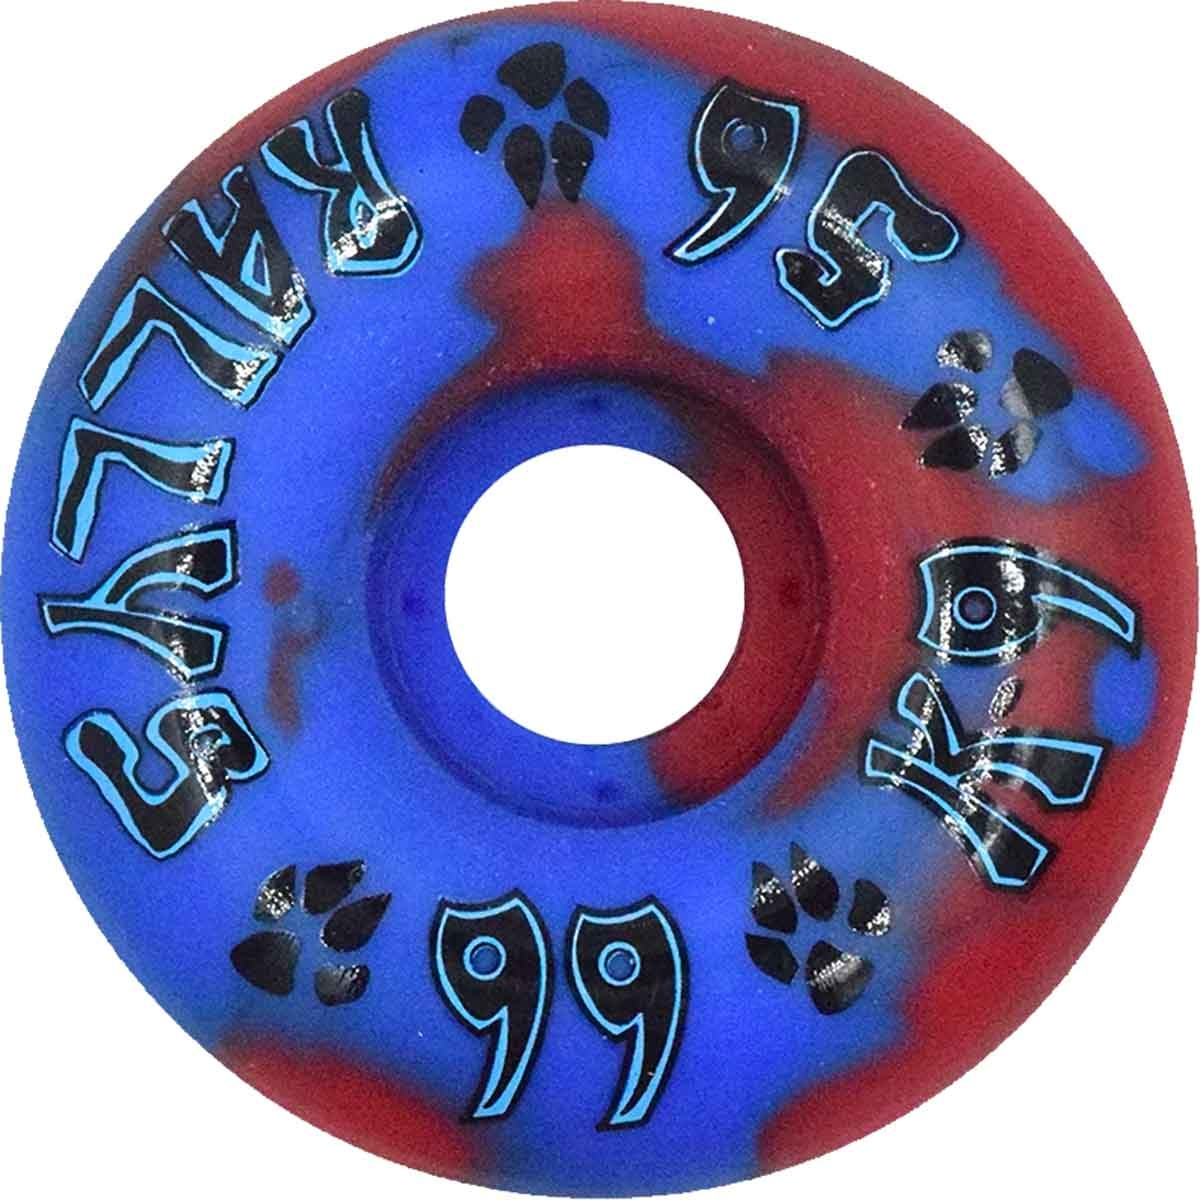 Dogtown K-9 Rally 99a Red/Blue 56mm